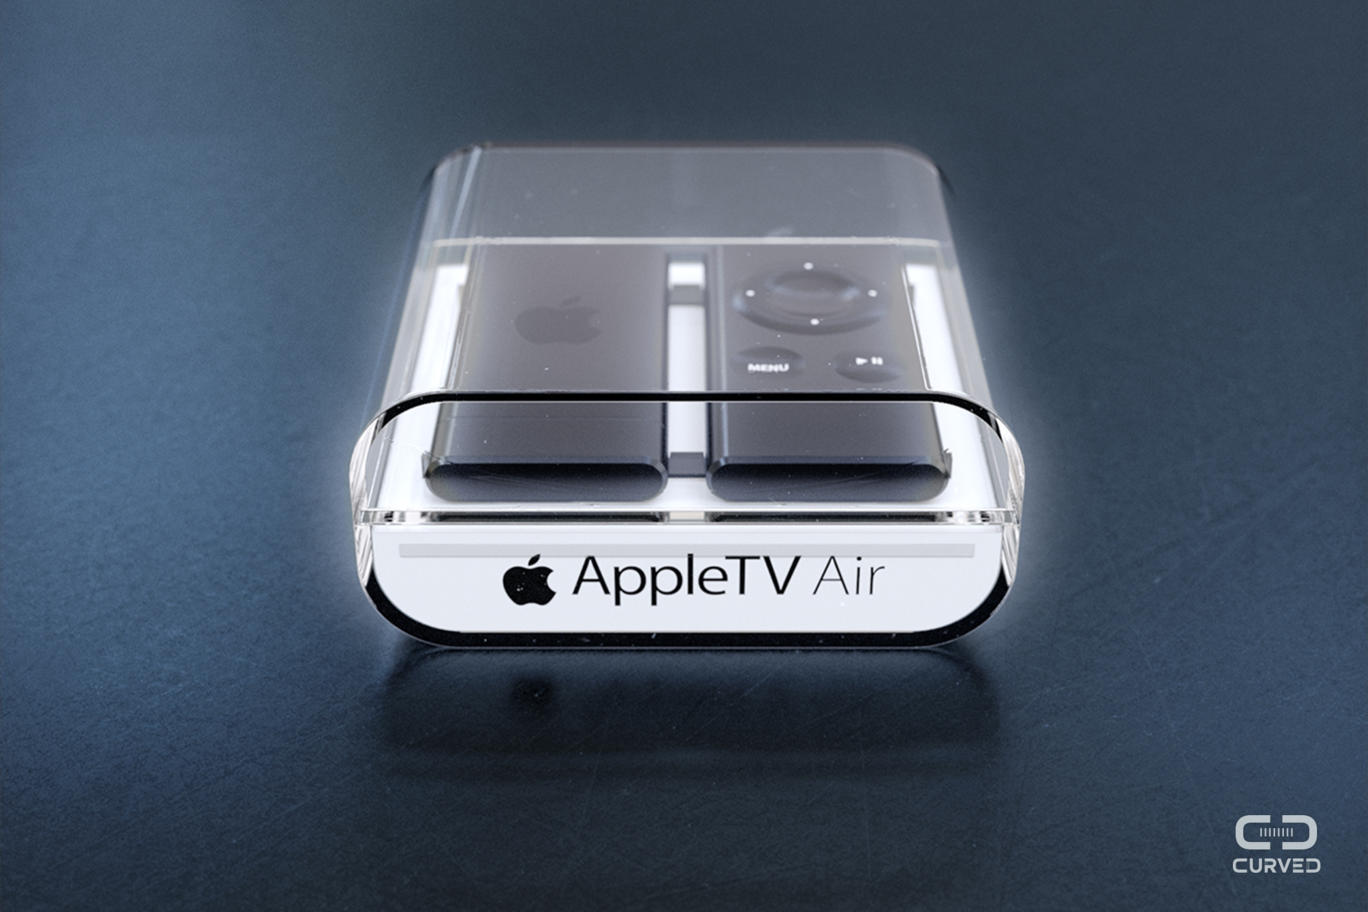 Apple TV Air